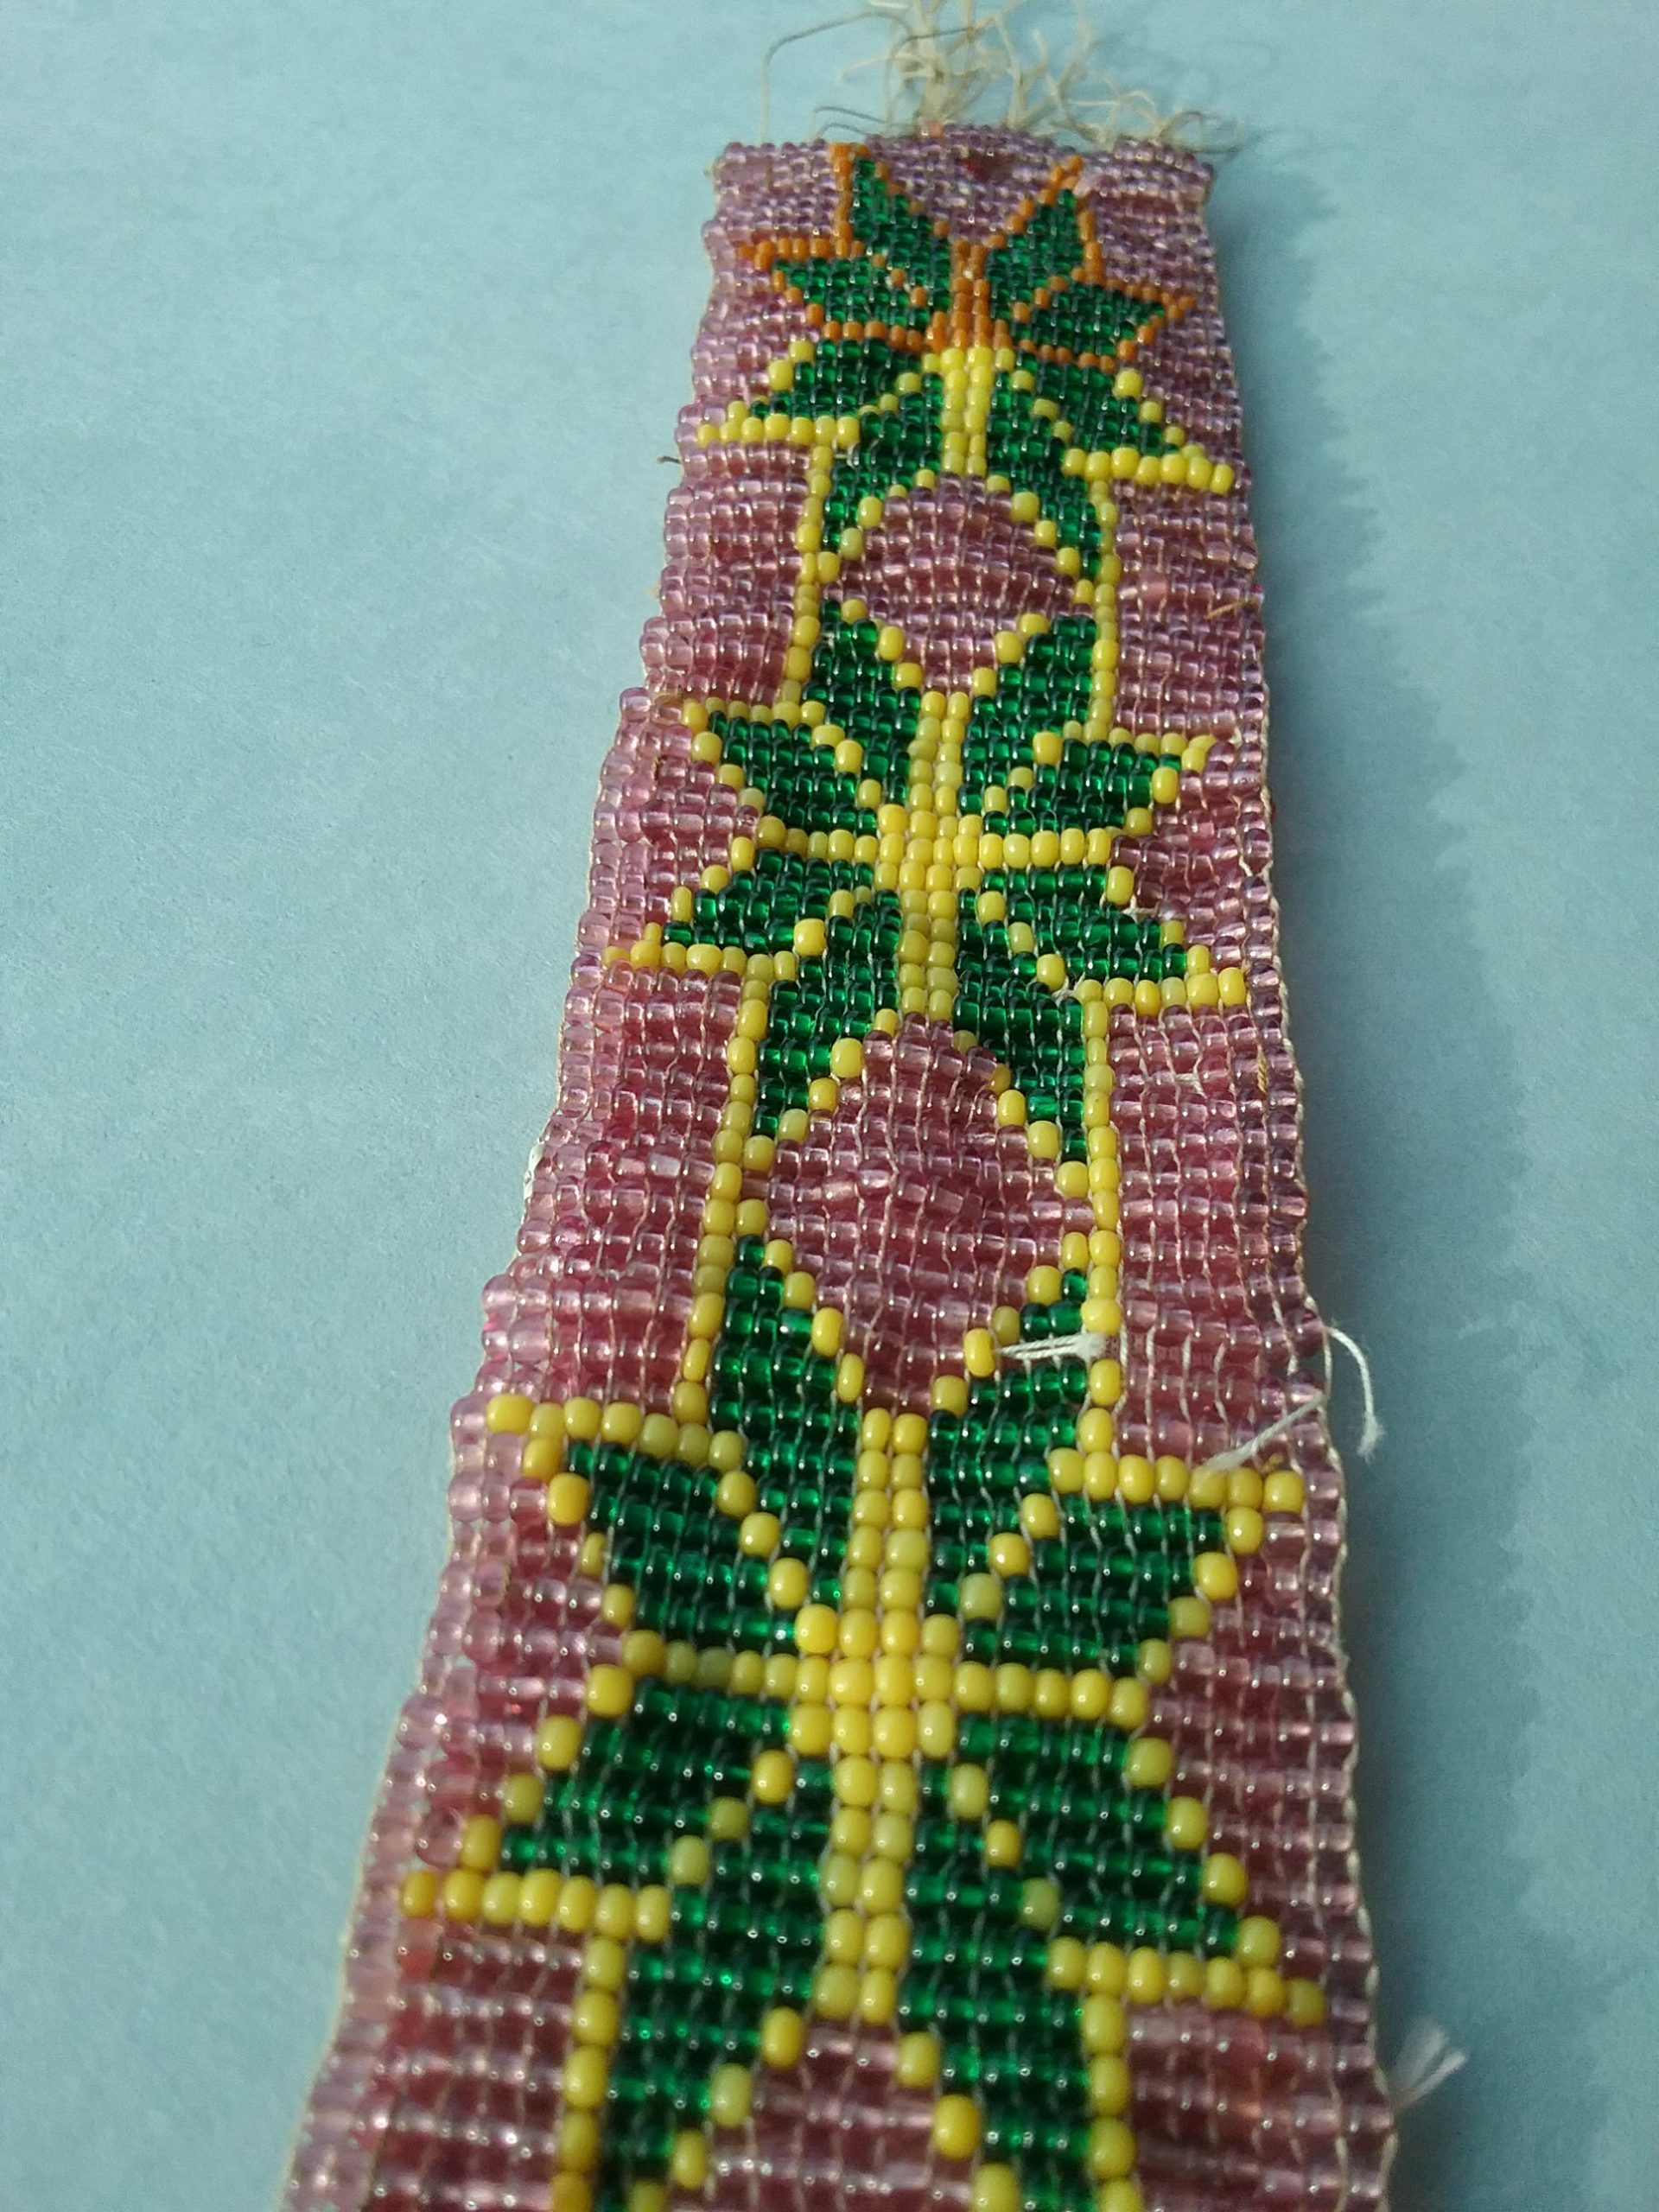 Closeup of beaded band: Loom-woven beaded band with pink, green, and yellow seed beads. Note that the artist switched to orange beads rather than yellow at the very end. MCHS collections, #1945.76.9.